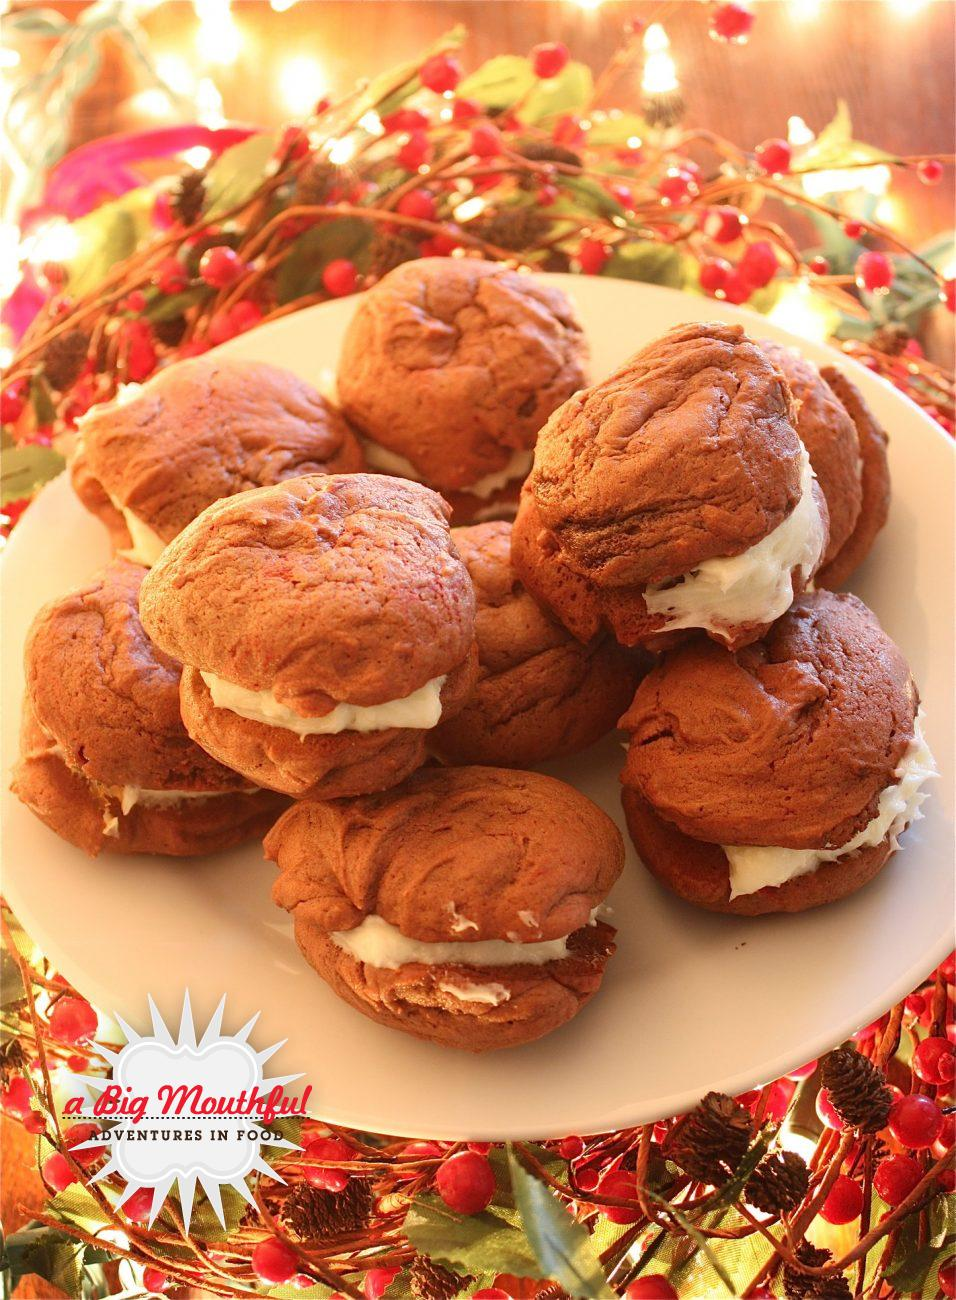 Red Velvet Whoopie Pies with Peppermint Cream Cheese Filling